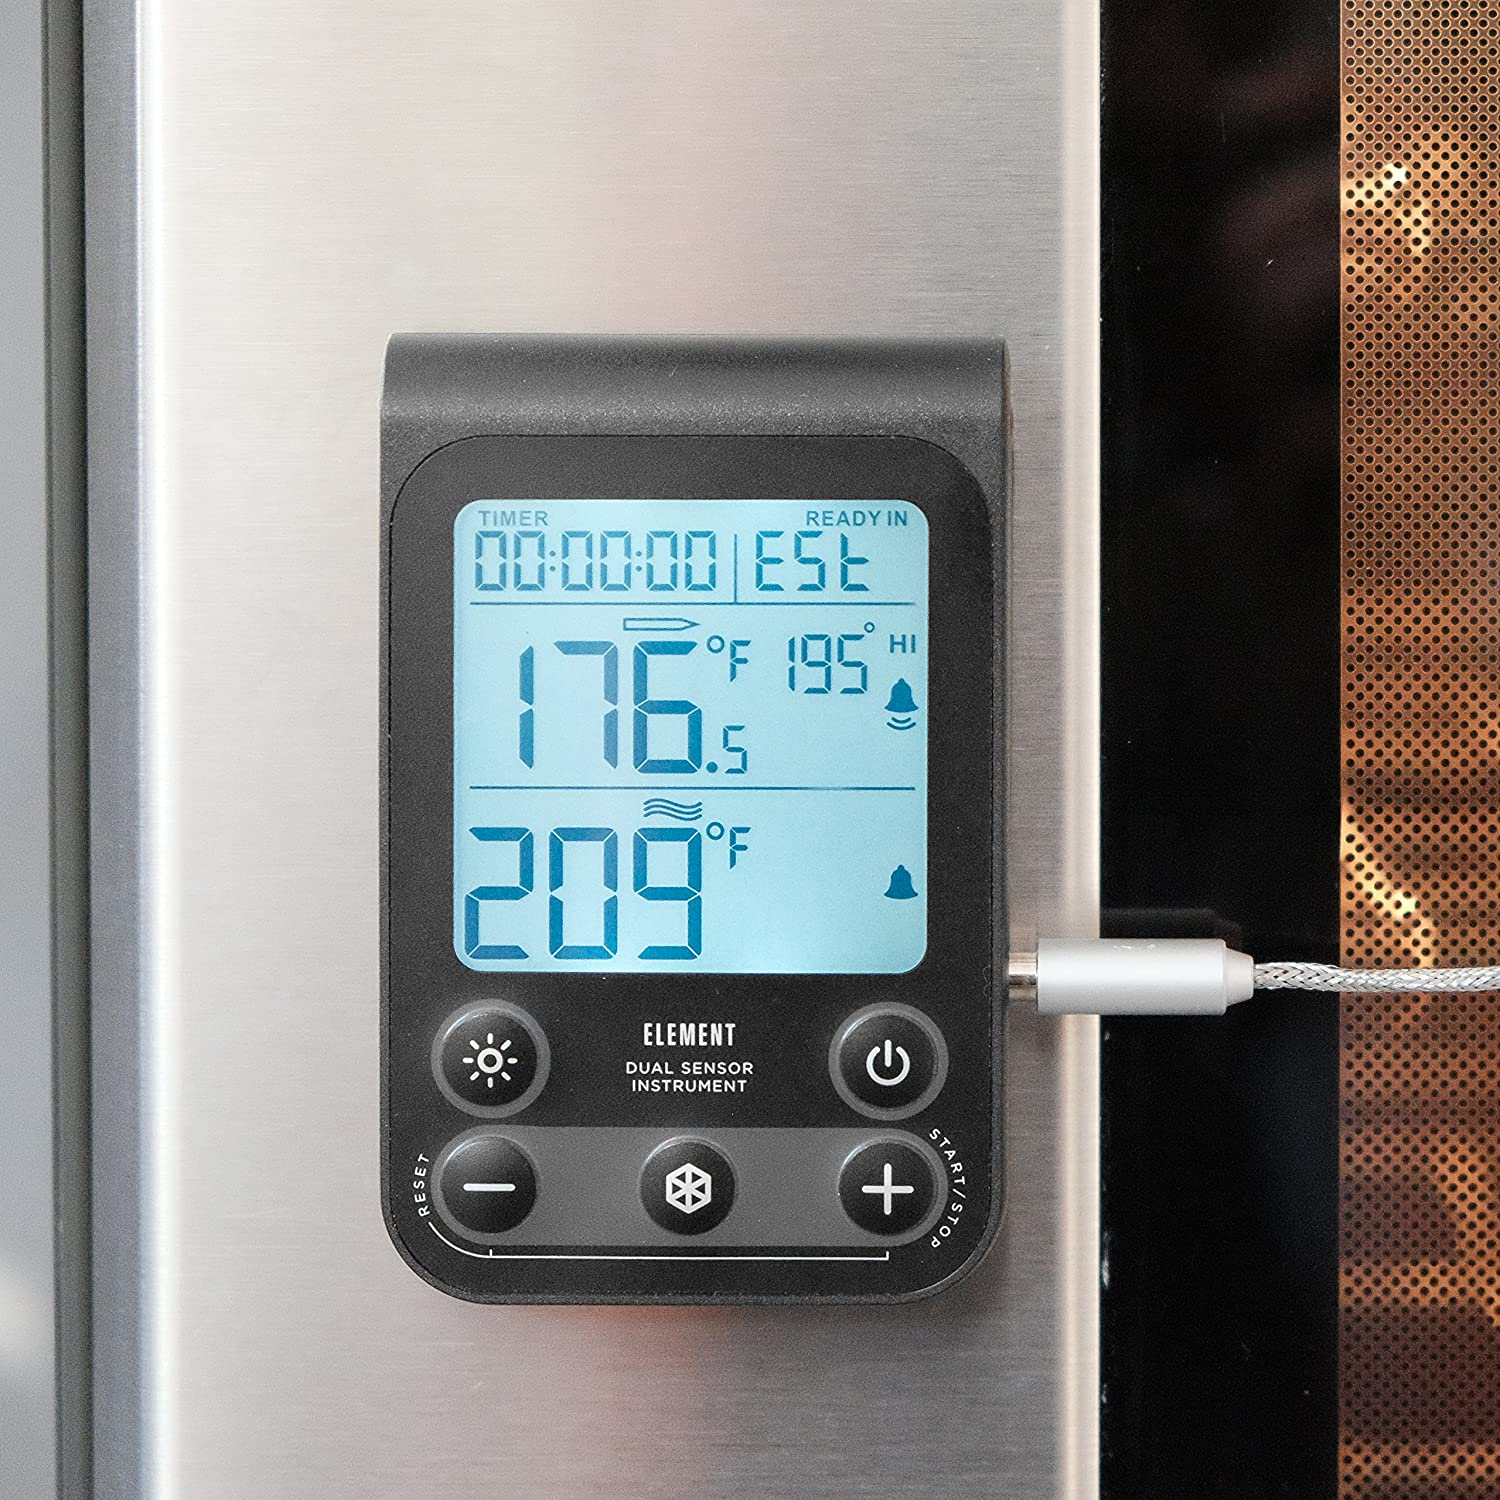 Amazon.com: Lavatools OVT2 Element Digital Oven Thermometer for Oven ...